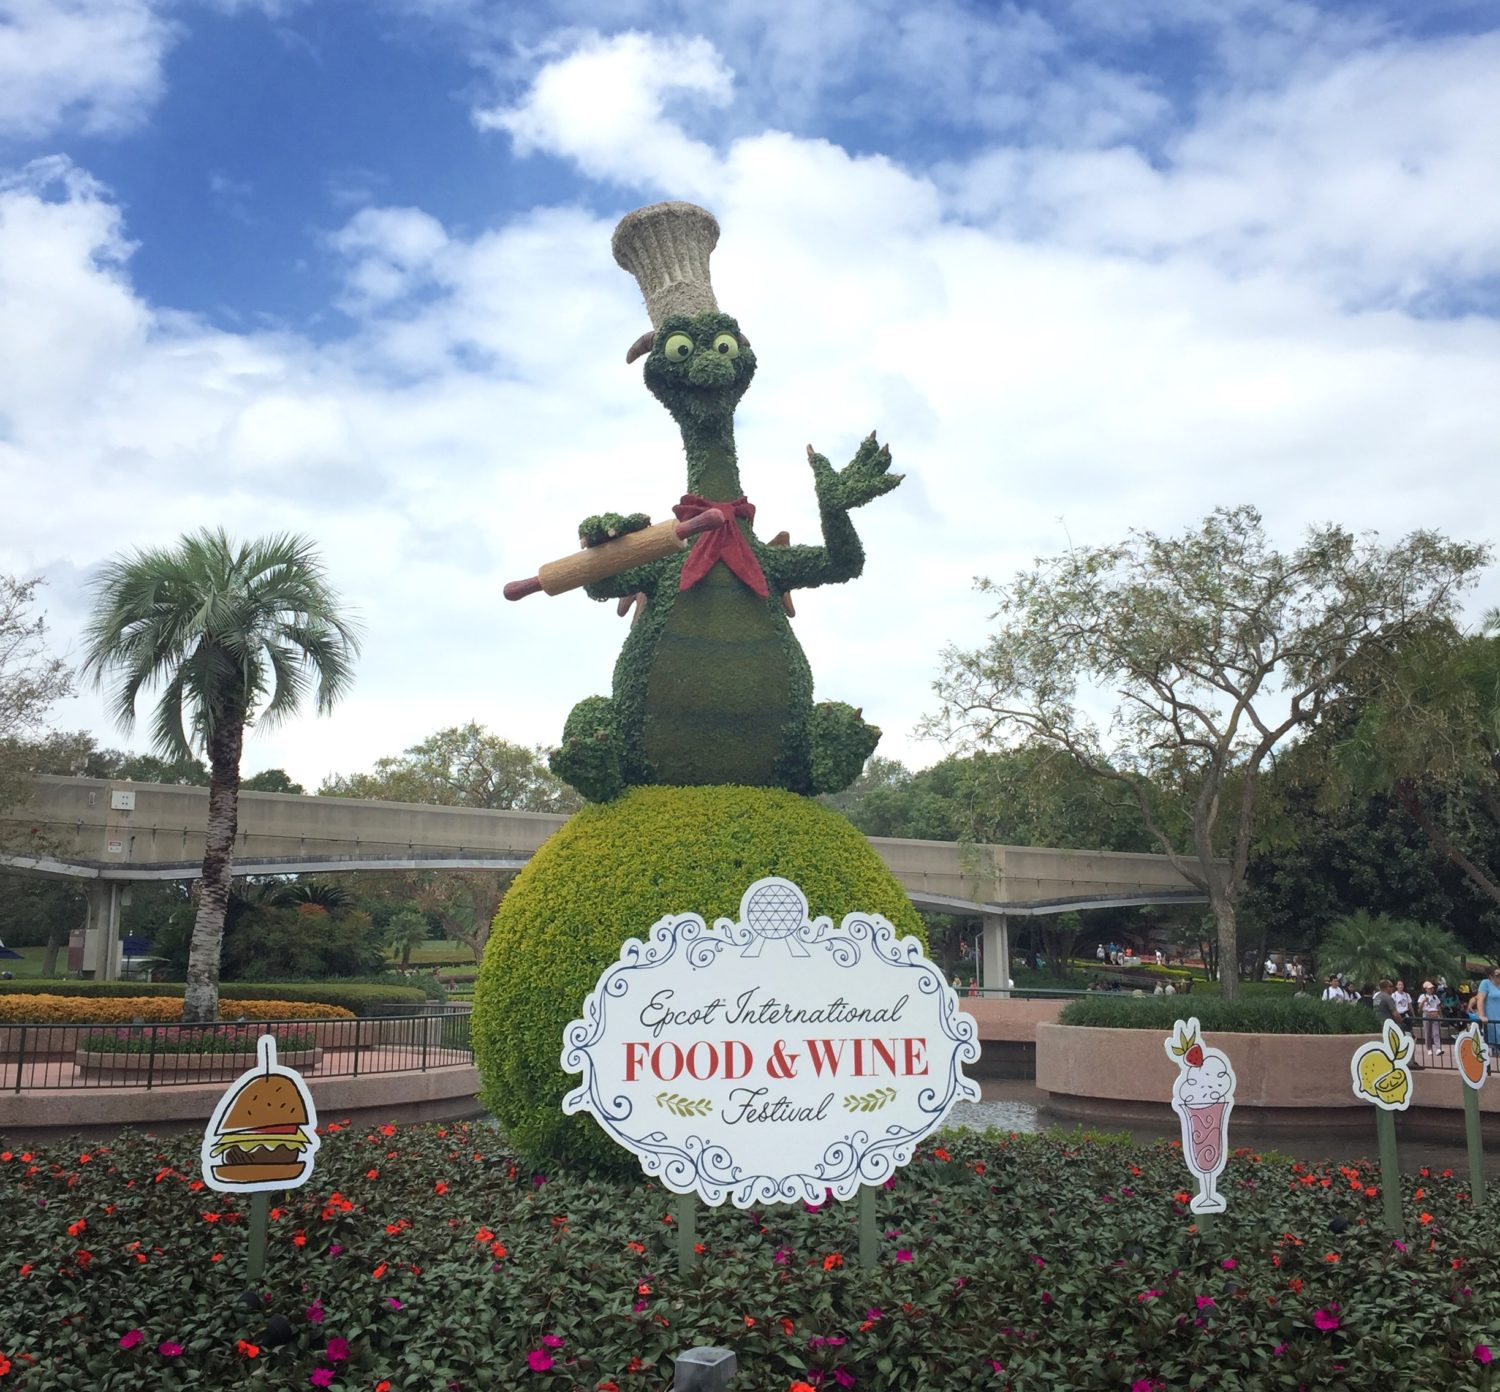 Review of Epcot International Food and Wine Festival at Disney World